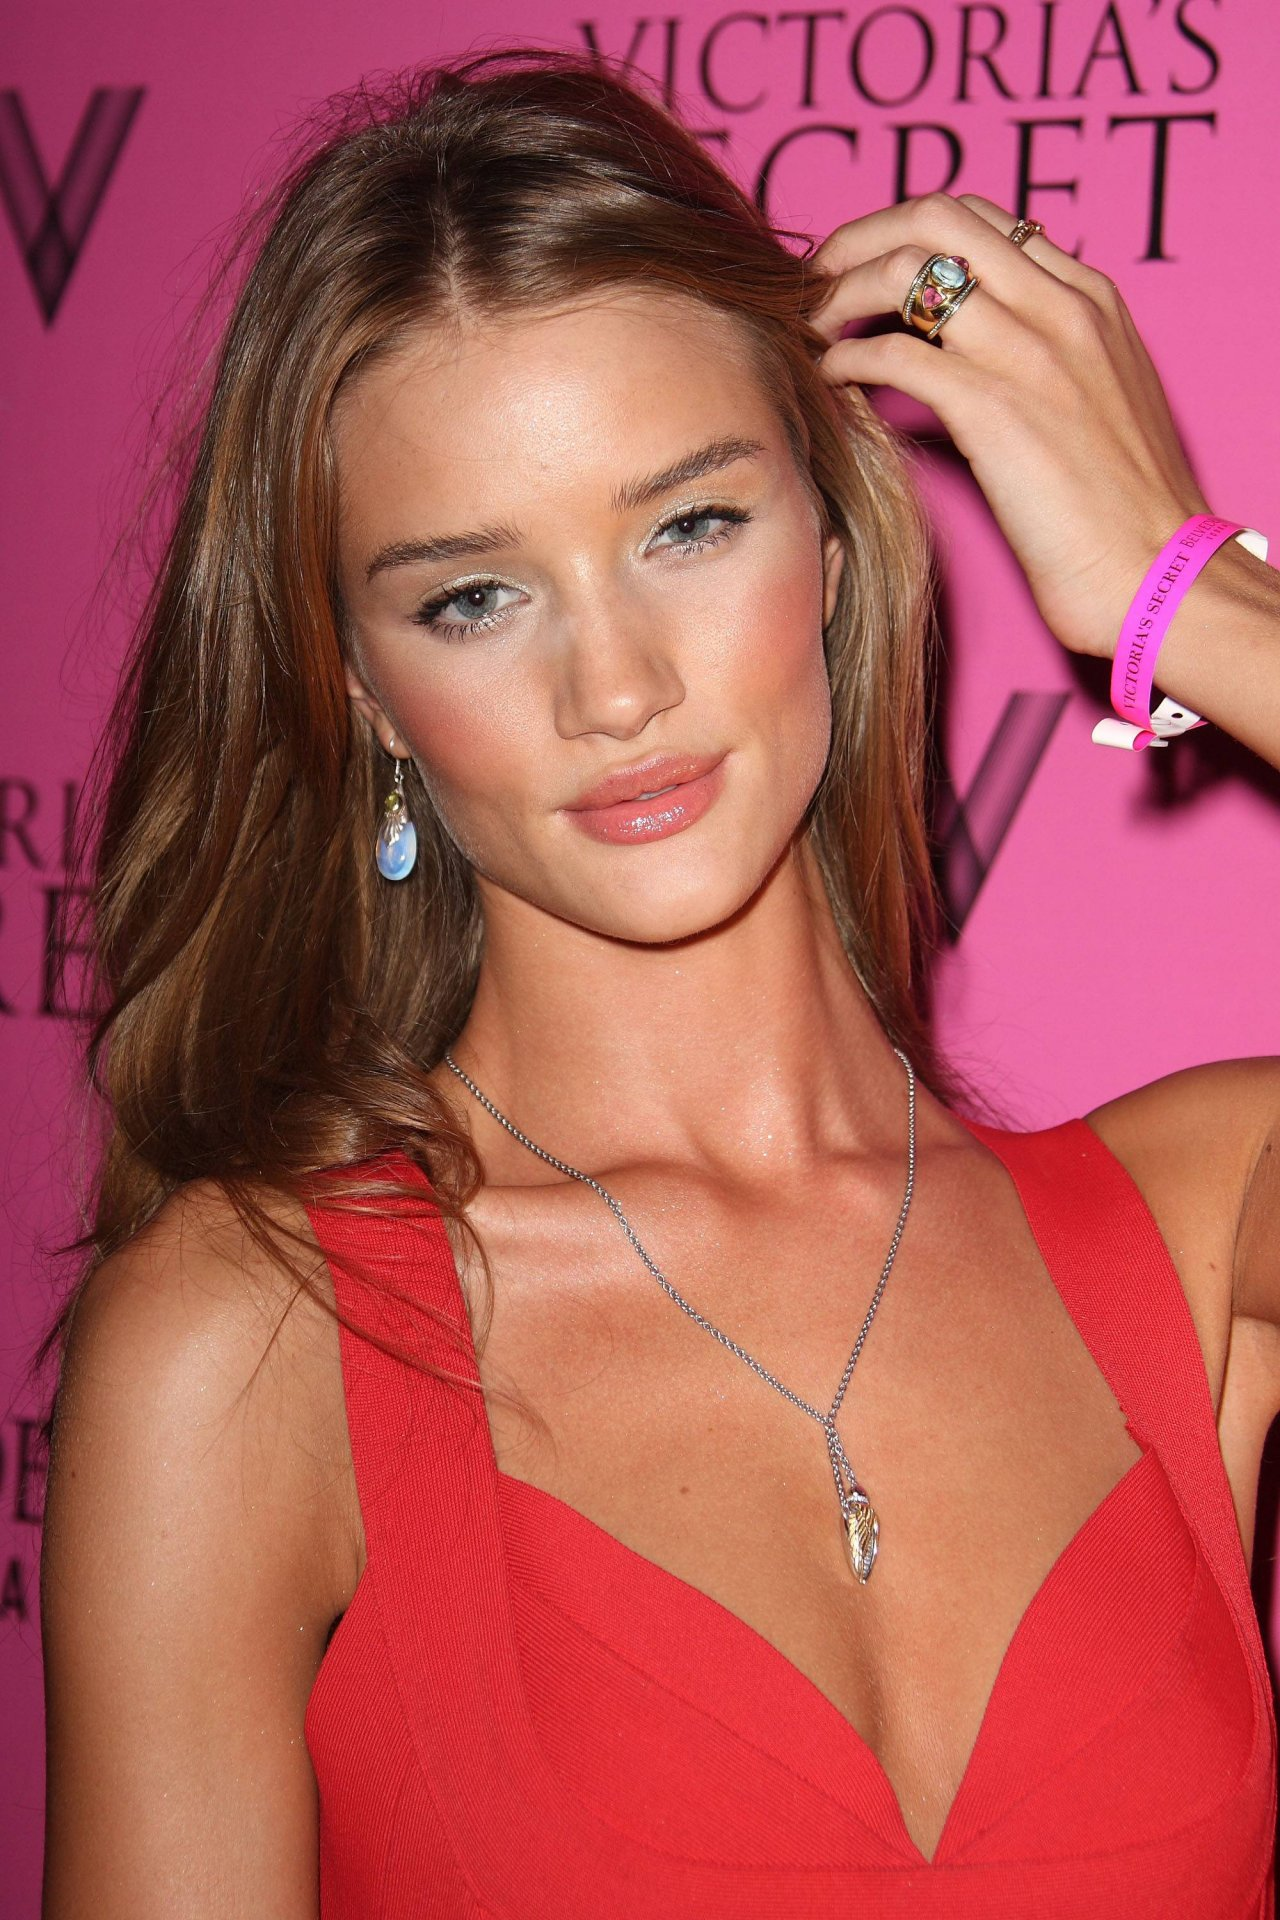 Rosie Huntington-Whiteley leaked wallpapers